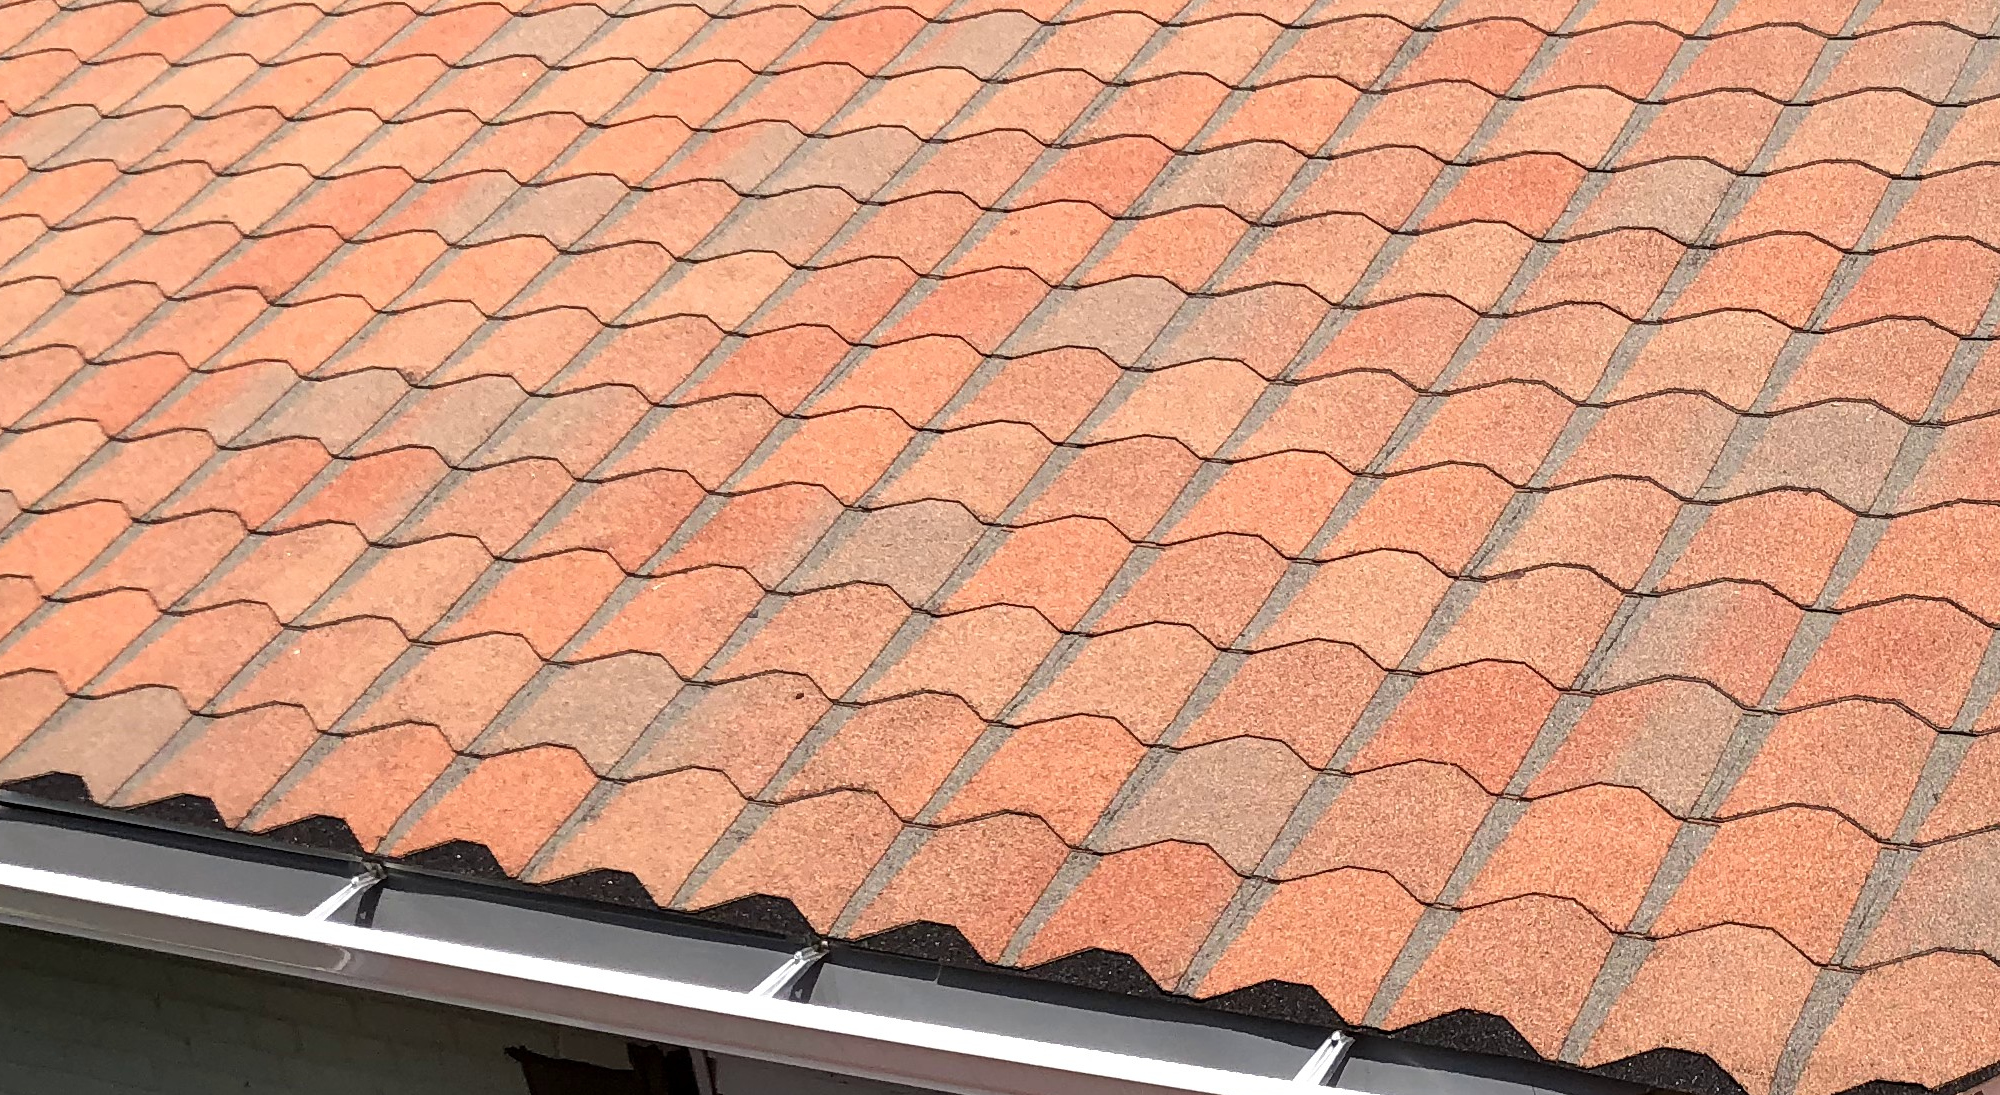 Long Reach Roofers Repair and Replace